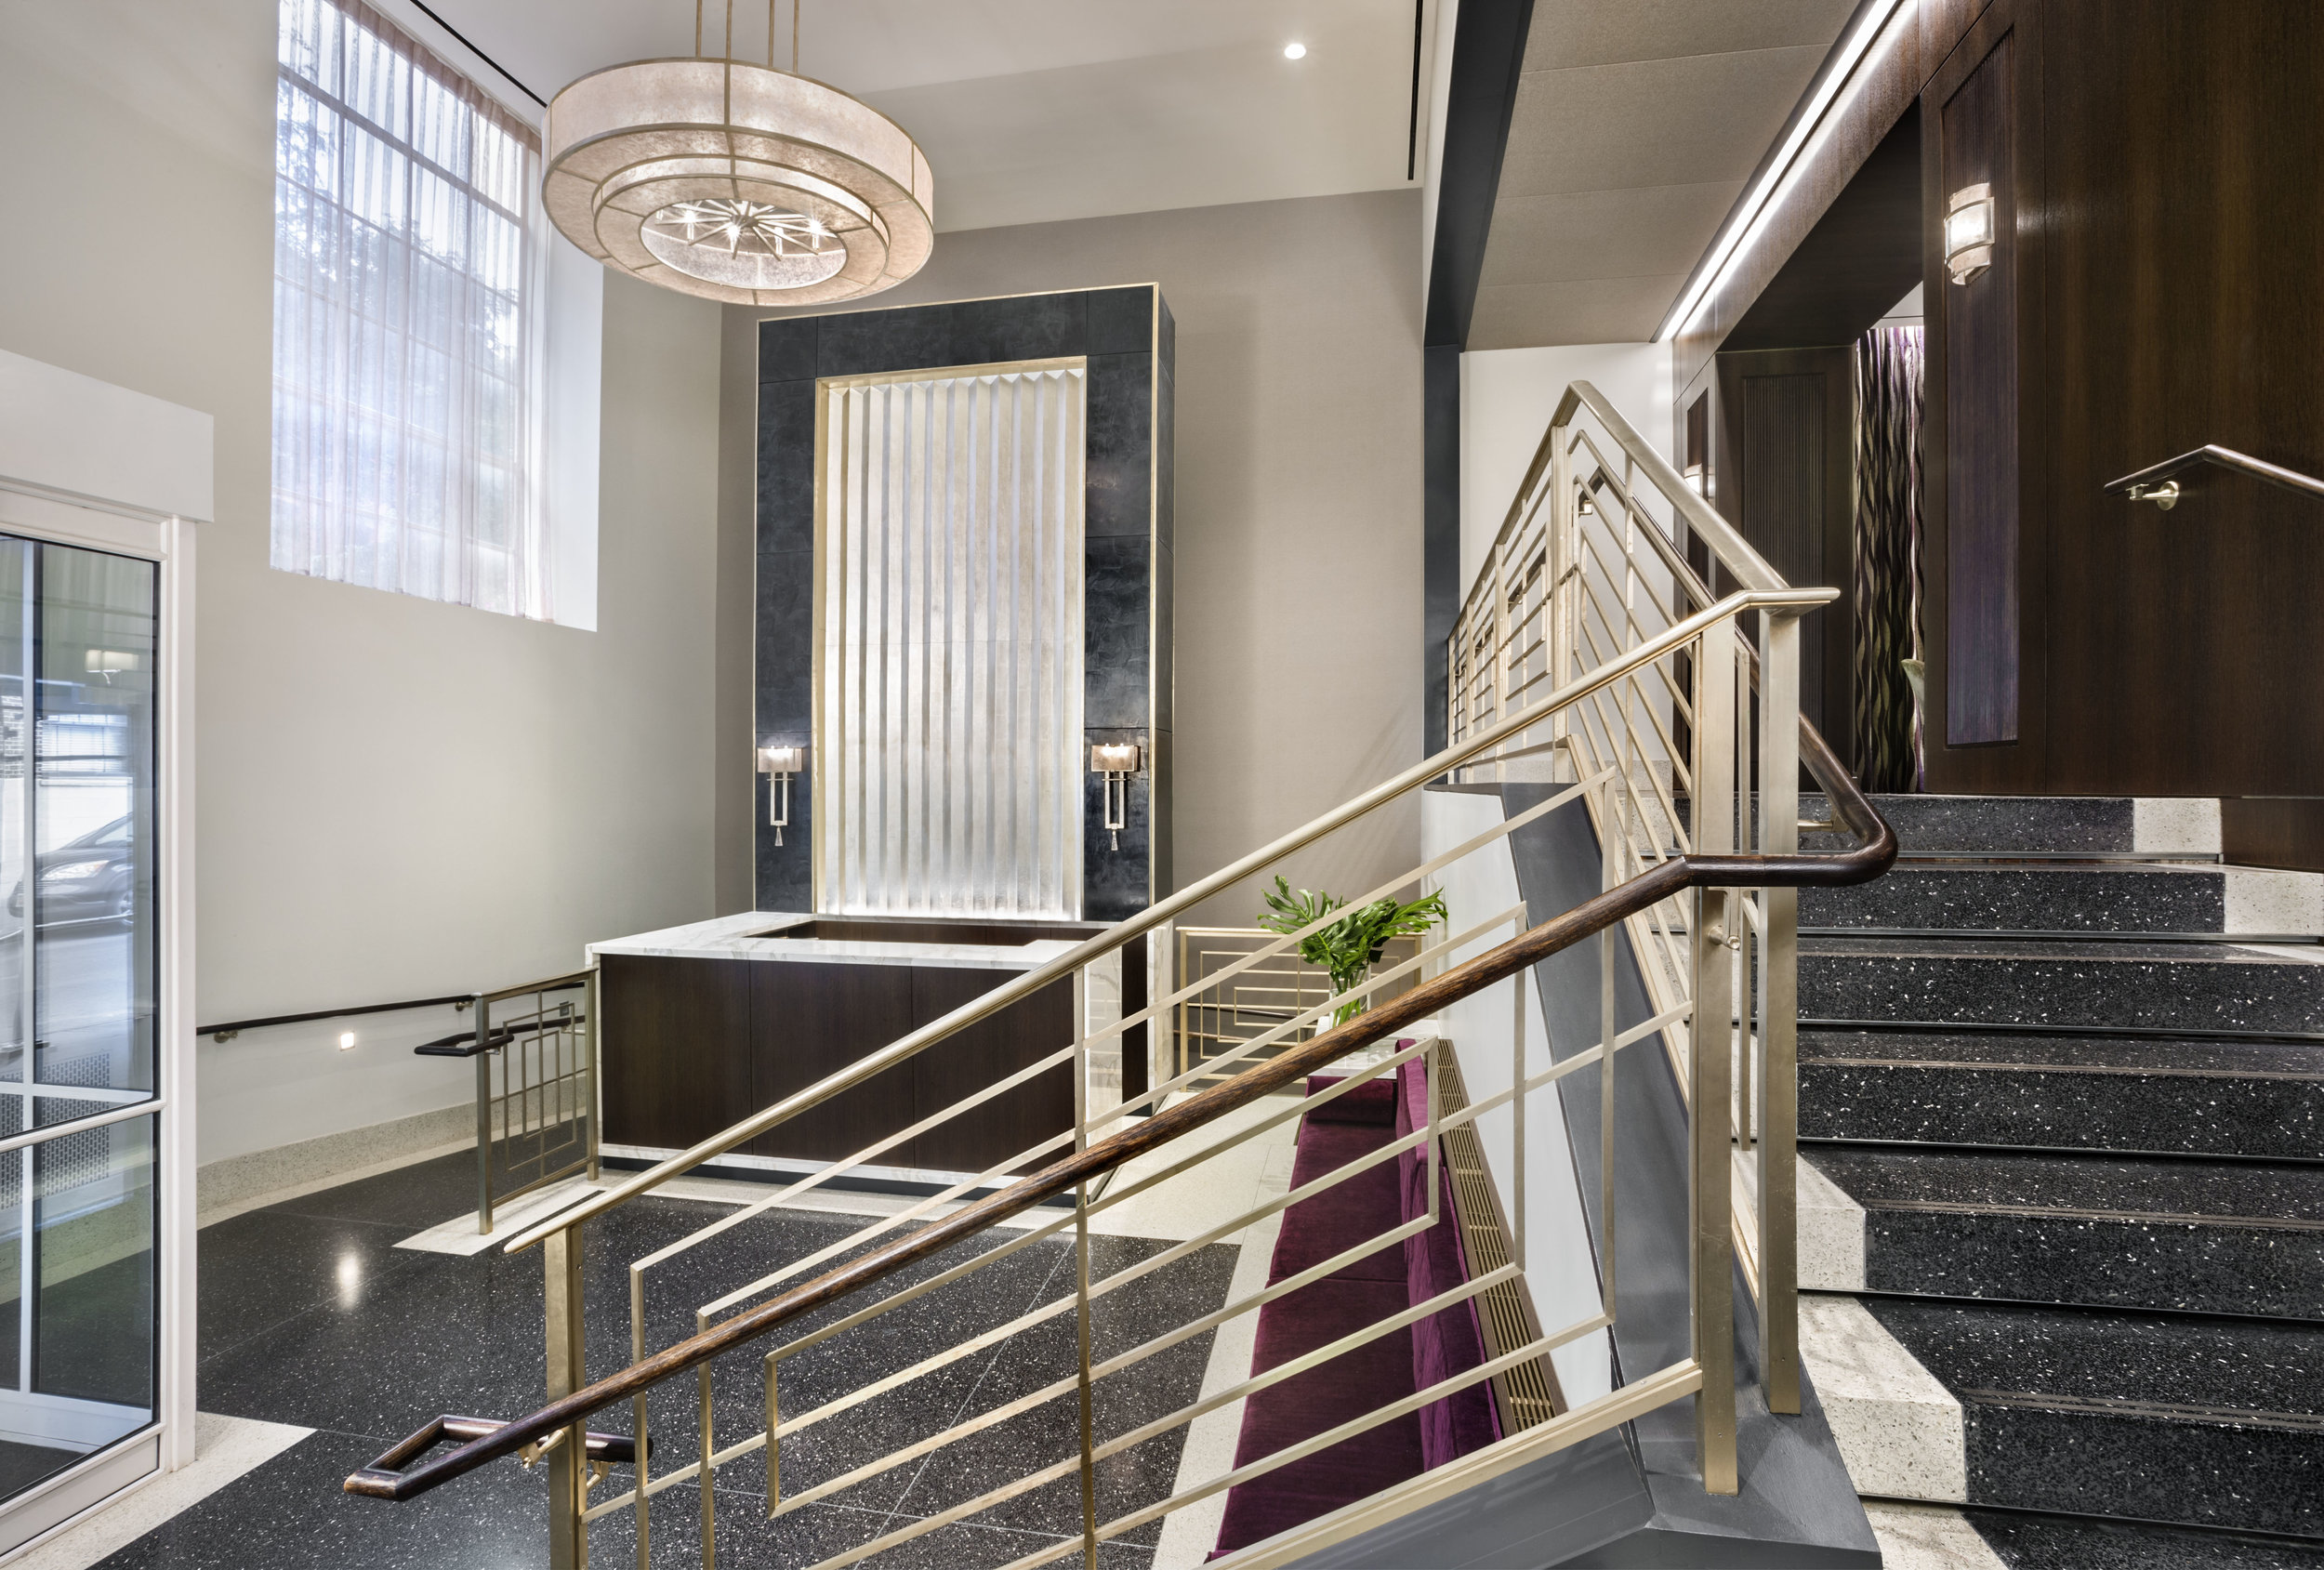 Architect Transforms Brooklyn Heights Co-op Lobby From Grim to Glam - Architect Transforms Brooklyn HeightArchitect Transforms Brooklyn Heights Co-op Lobby From Grim to Glams Co-op Lobby From Grim to Glam